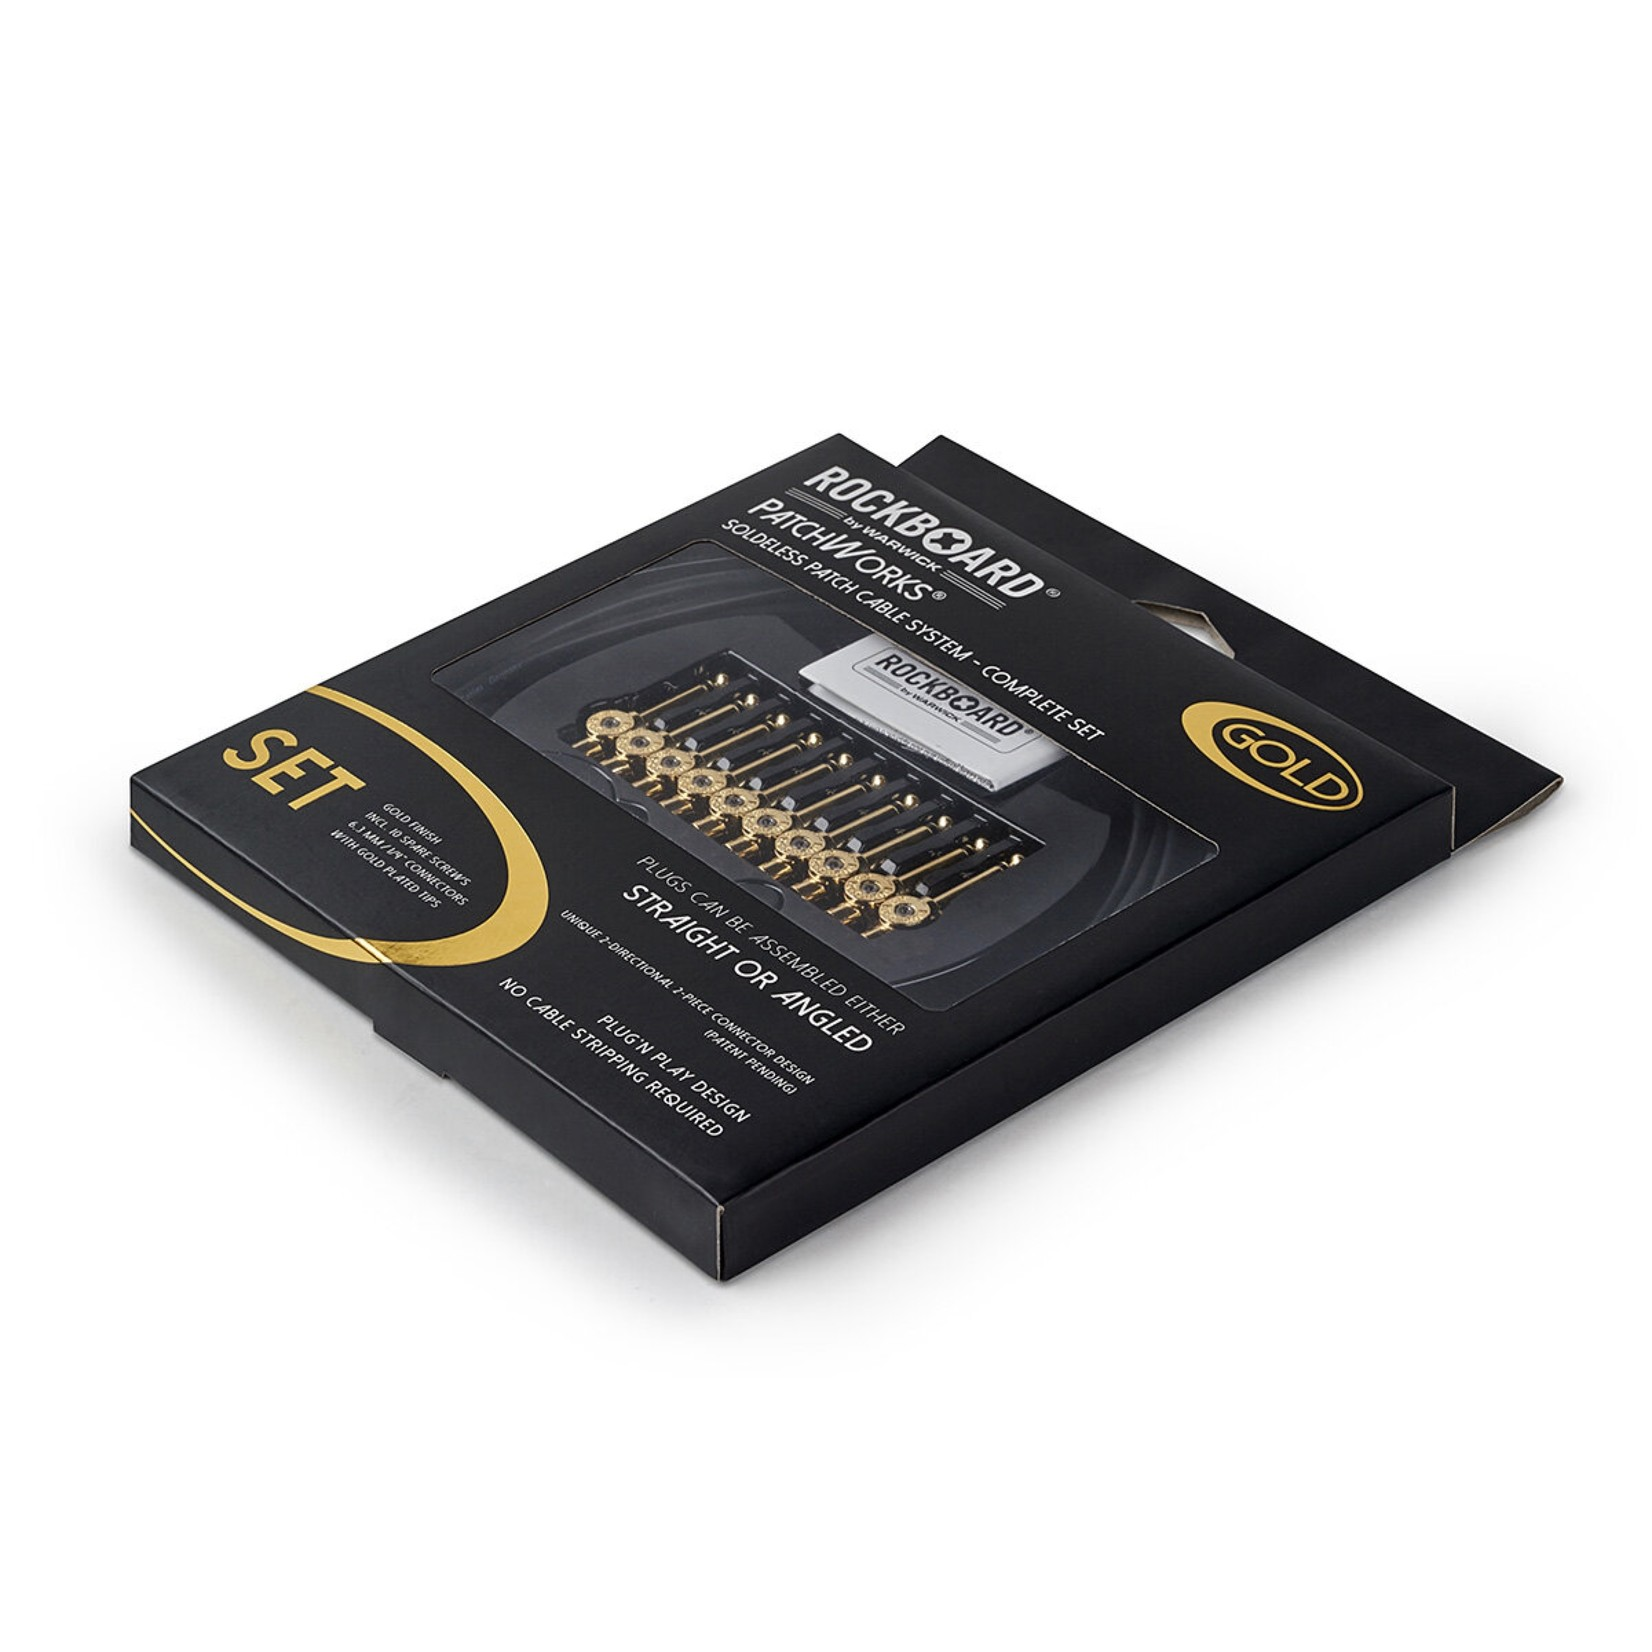 Rockboard RockBoard PatchWorks Solderless Patch Cable Set - 3 m / 9.8 ft. Cable   10 Plugs - Gold